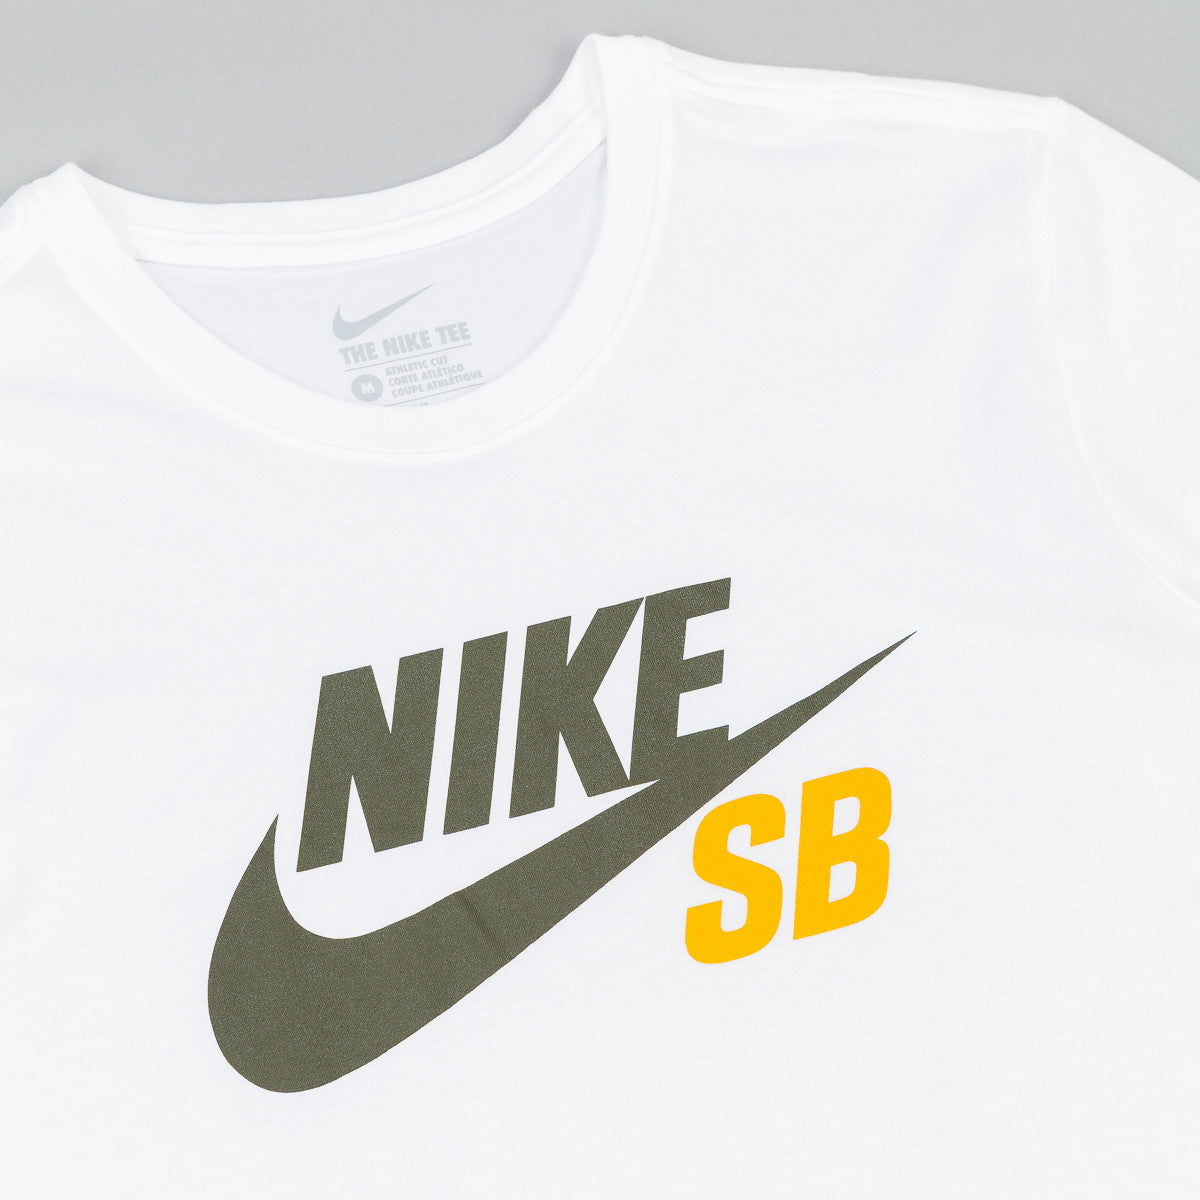 Nike SB Dri-Fit Icon Reflective T-Shirt - White / Cargo Khaki